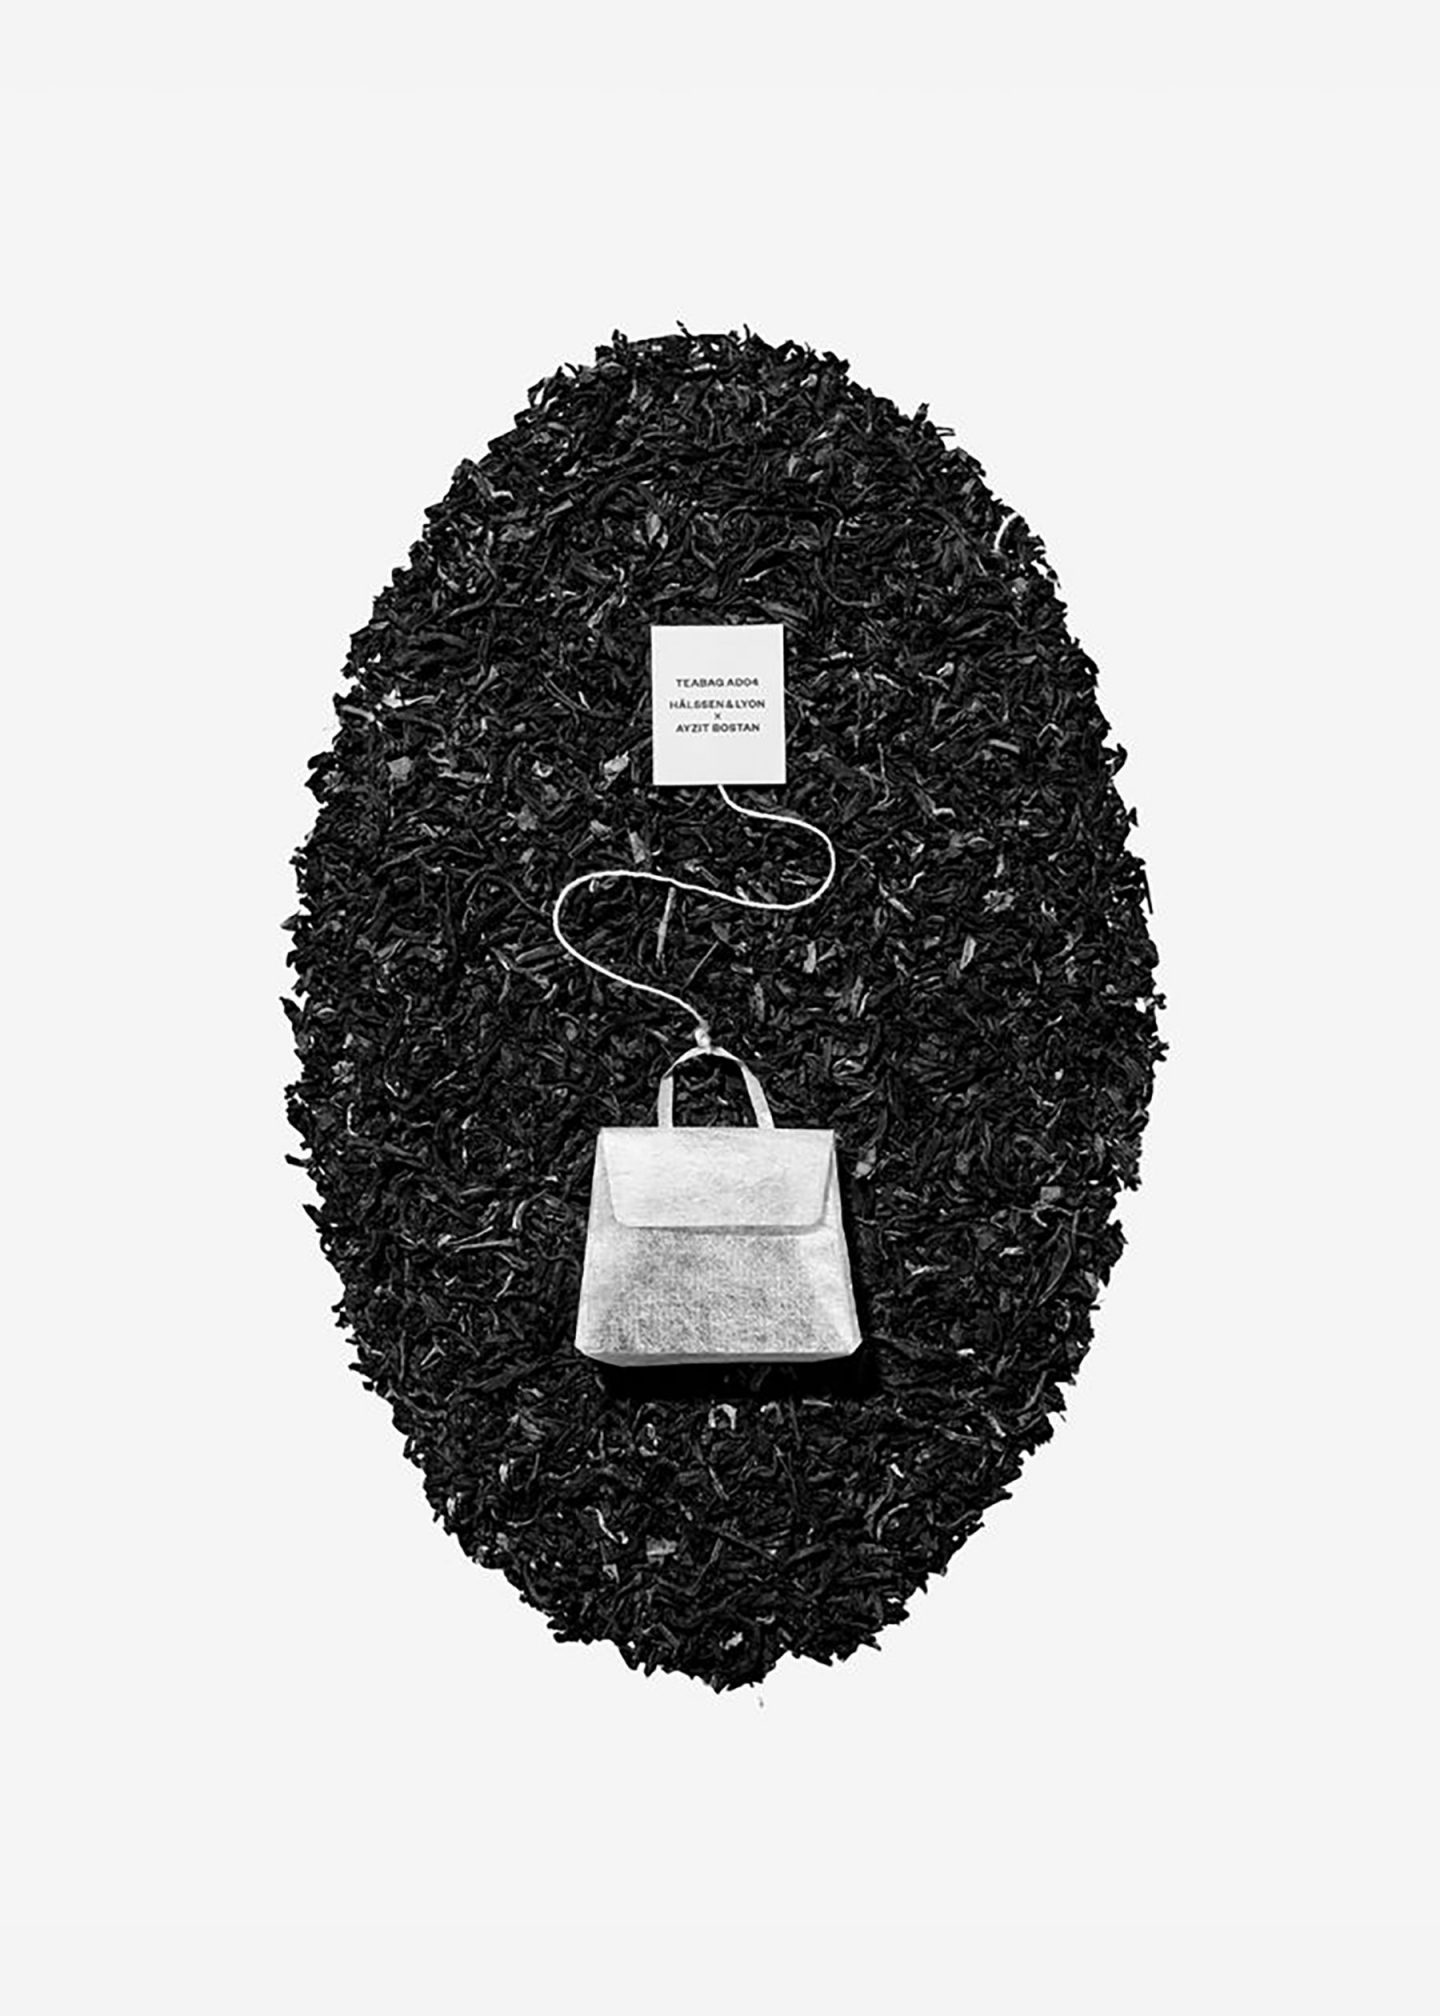 iGNANT-Design-Halssen-&-Lyon-Ayzit-Bostan-The-Teabag-Collection-14